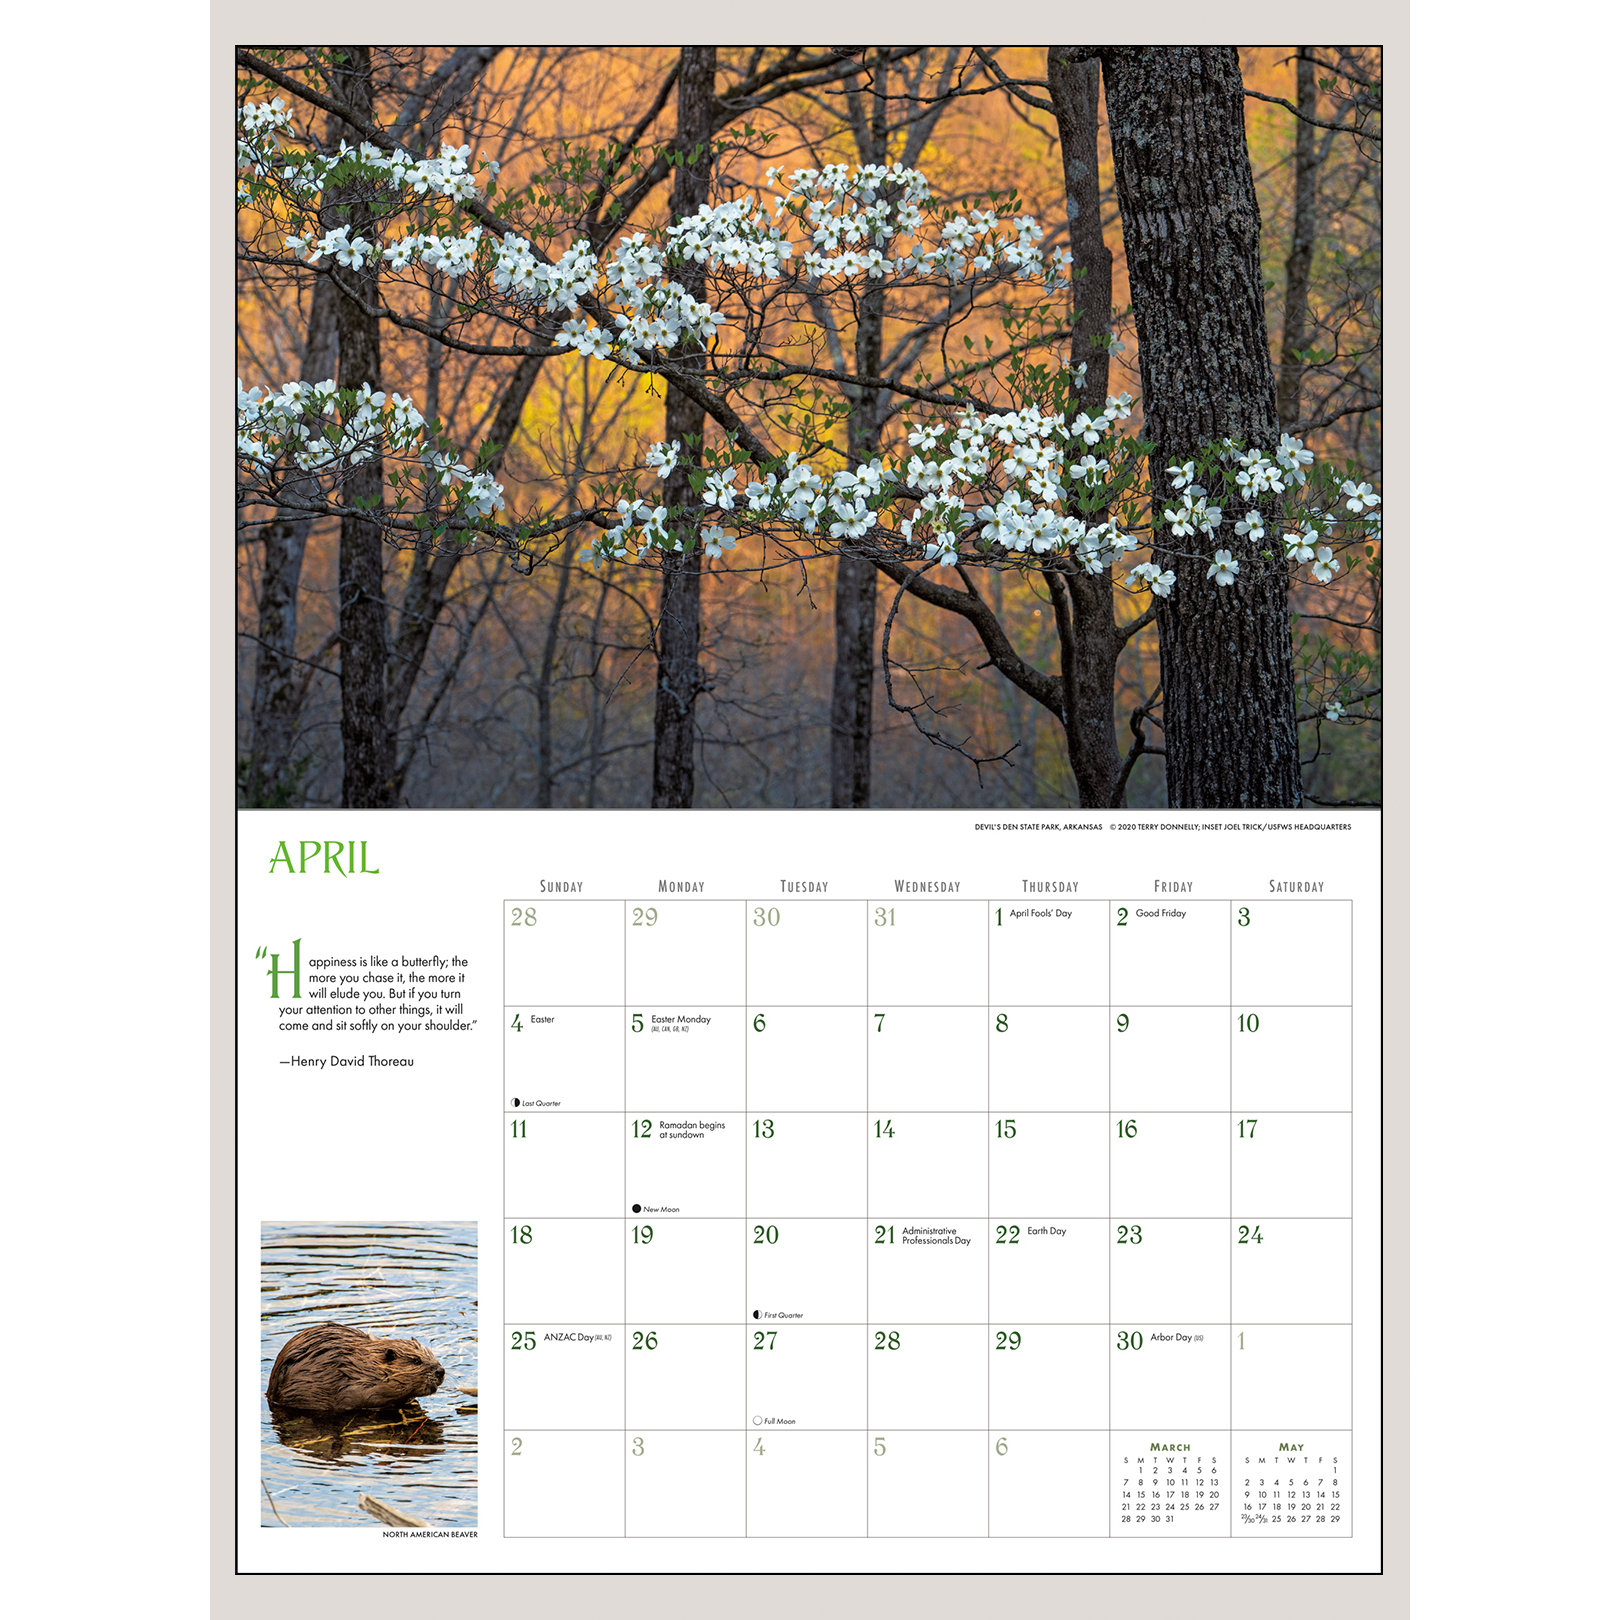 """2021 Into the Woods 18"""" x 12"""" DELUXE WALL CALENDAR"""